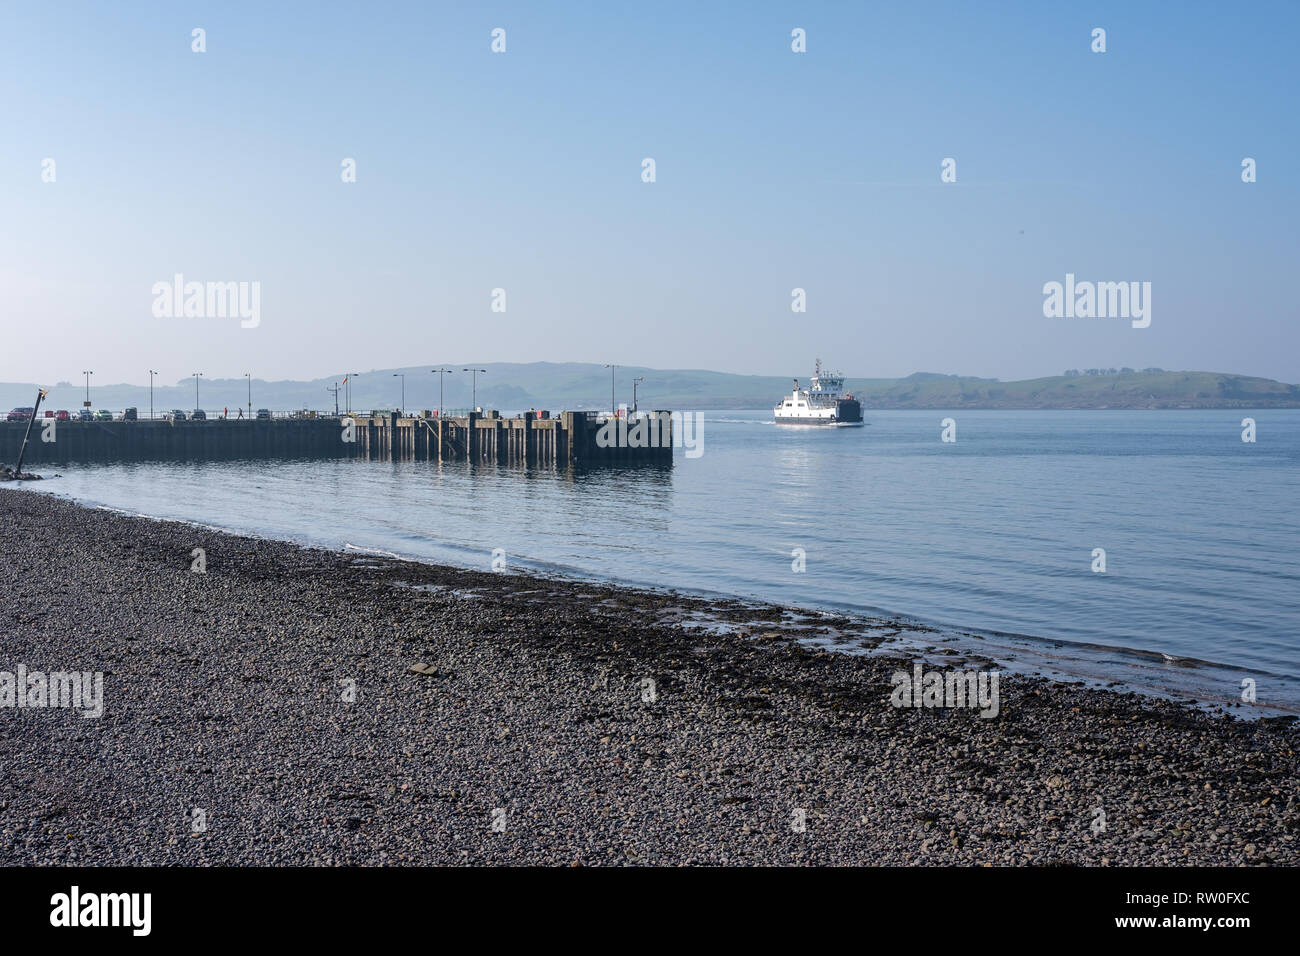 Largs Pier and Millport Ferry on a beautiful February day in Scotland with blue sky and a blue River Clyde. - Stock Image